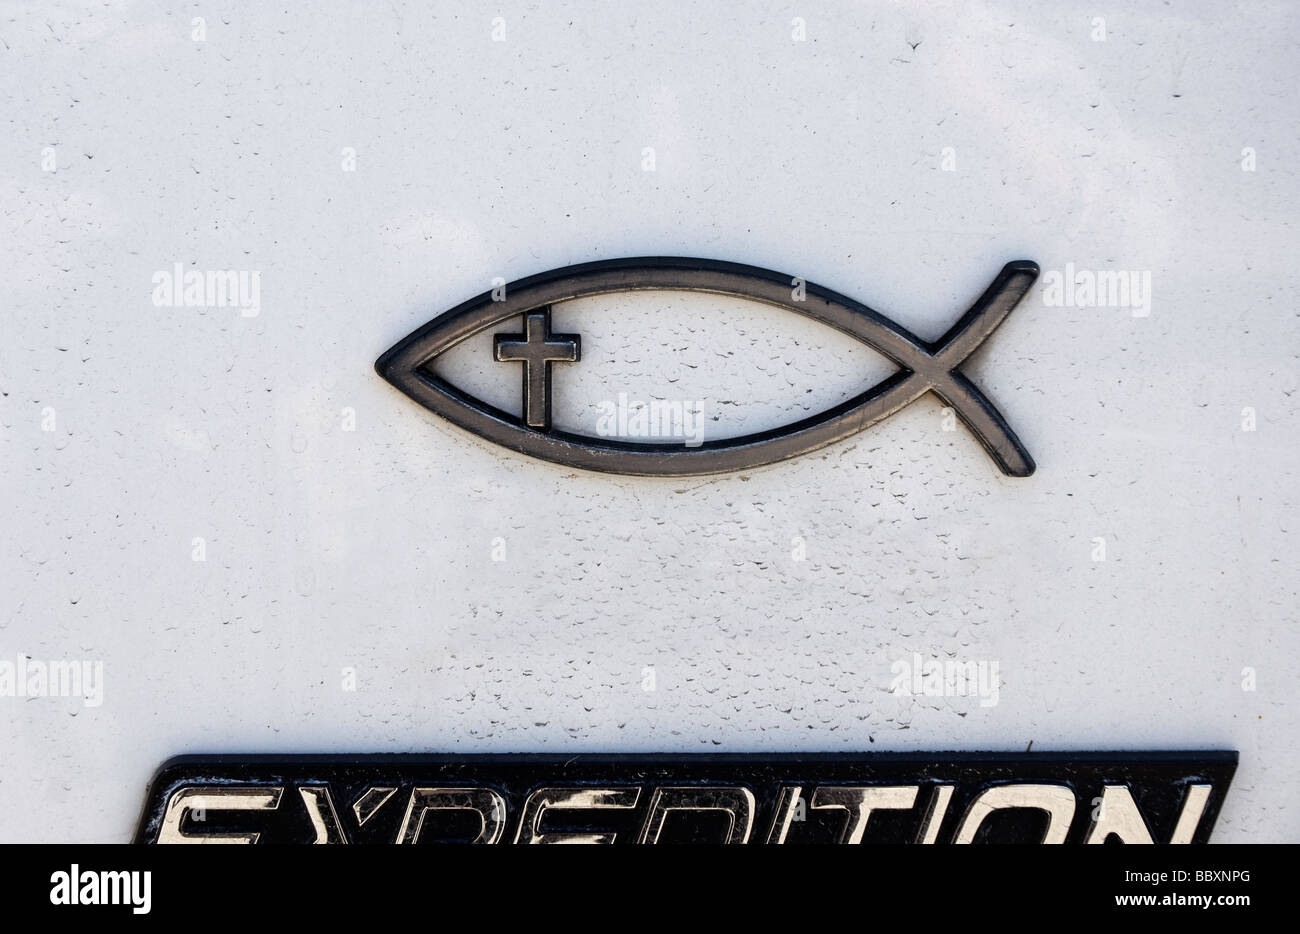 Christian fish stock photos christian fish stock images alamy christian emblem of fish with cross inside on exterior of auto stock image biocorpaavc